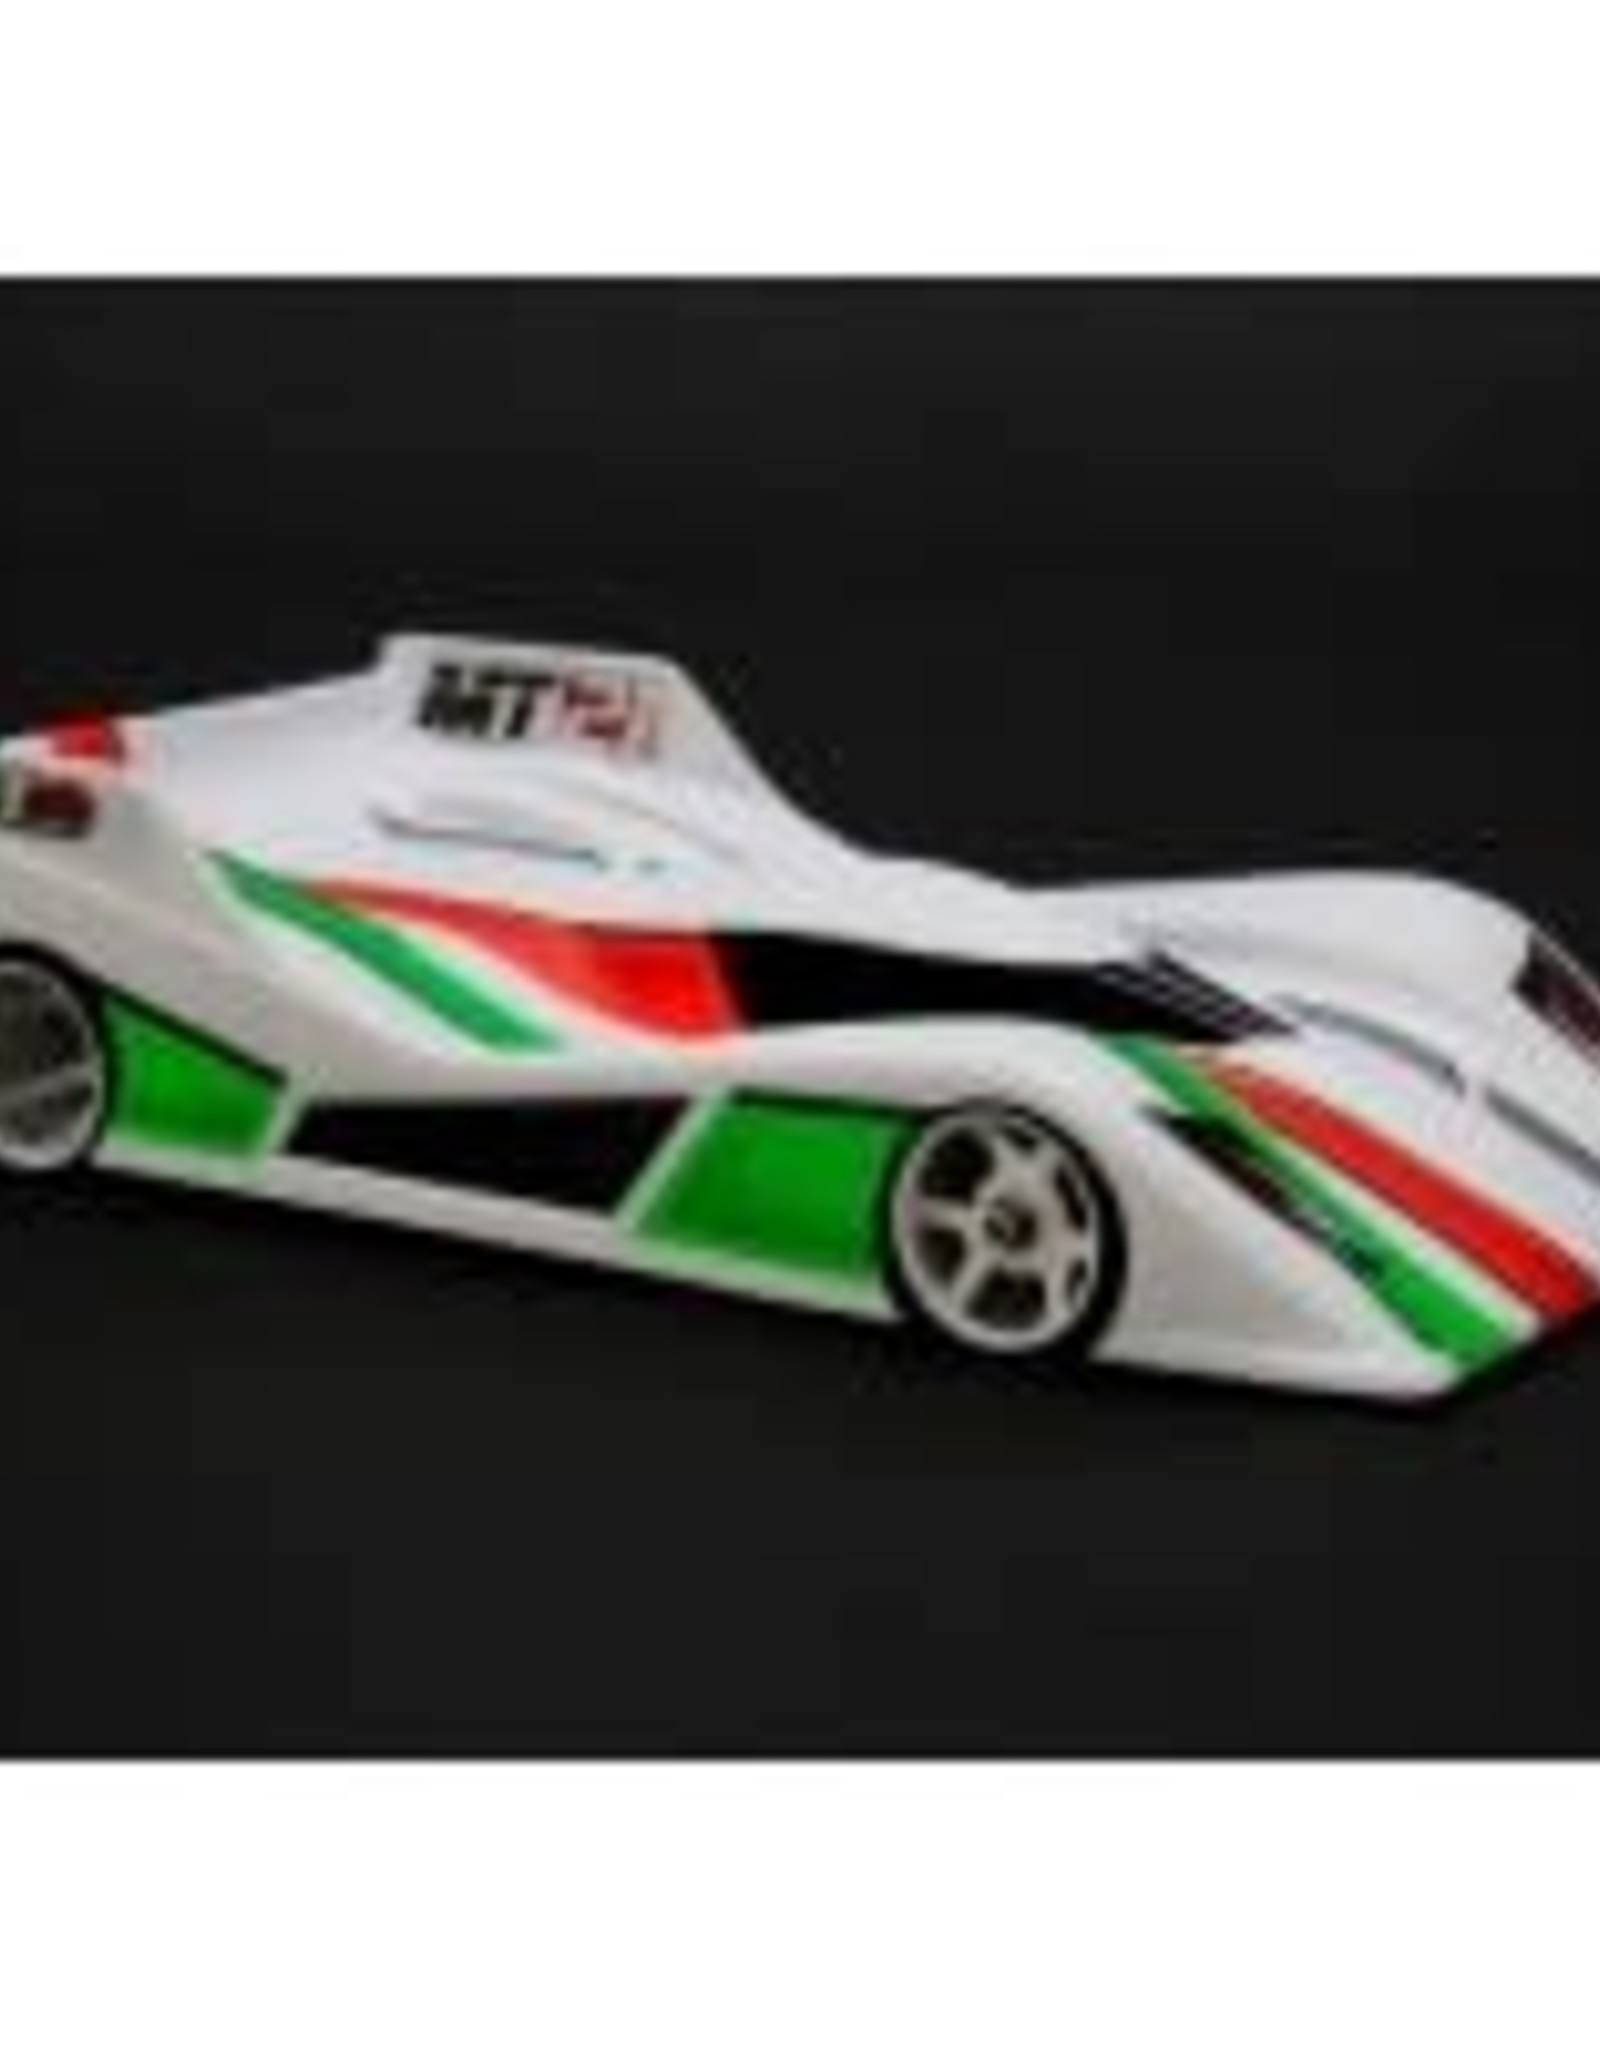 Mon-Tech MT 21 La Leggera 1/12th Body